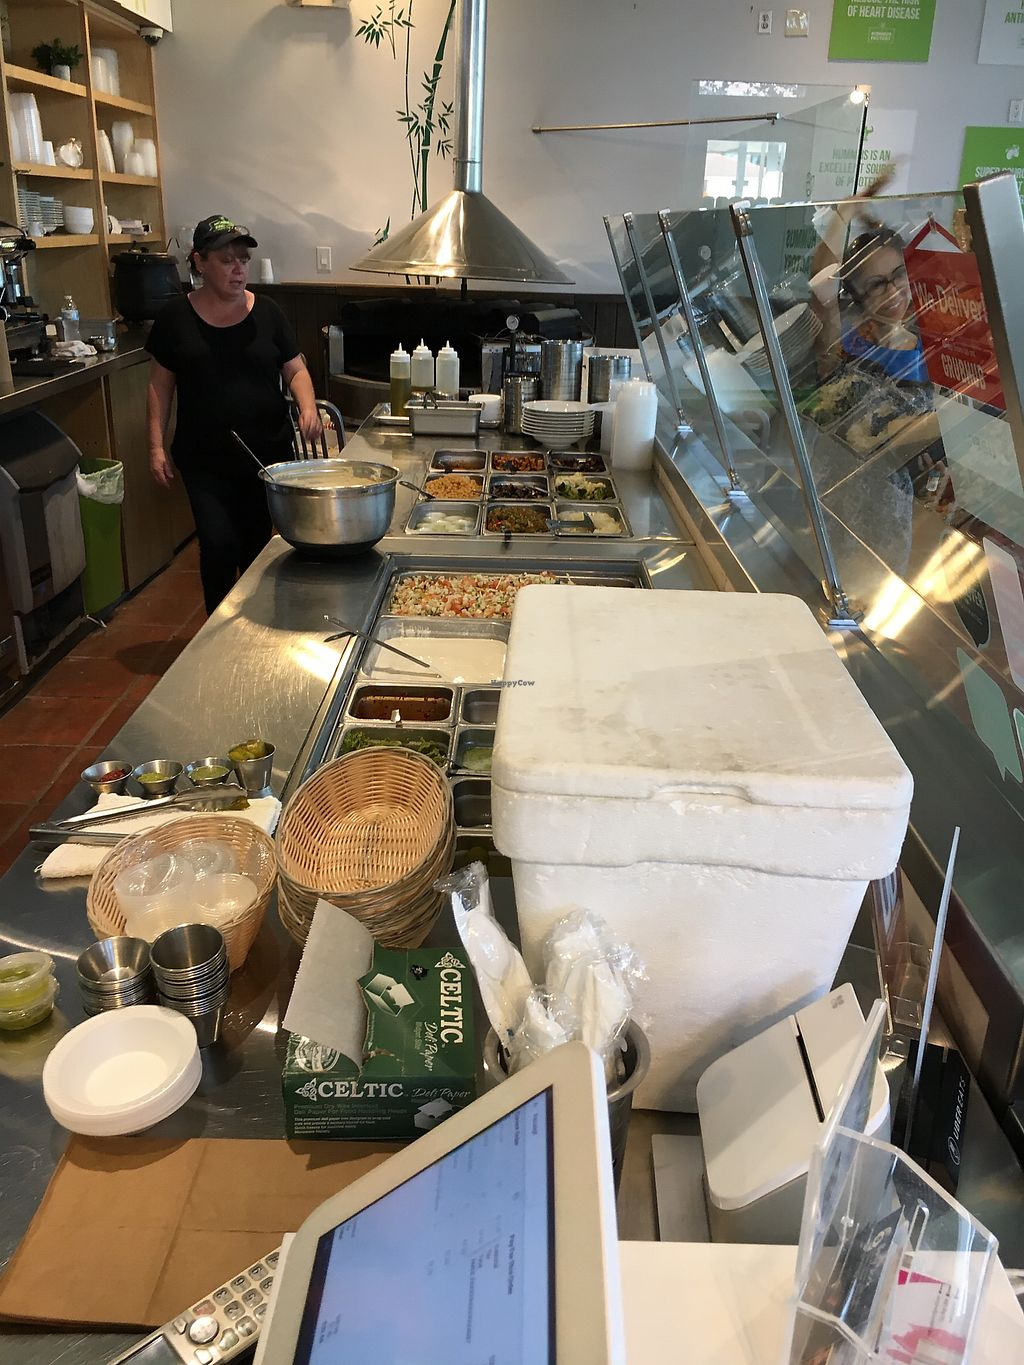 """Photo of The Hummus Factory  by <a href=""""/members/profile/daroff"""">daroff</a> <br/>Prep area <br/> October 24, 2017  - <a href='/contact/abuse/image/103558/318442'>Report</a>"""